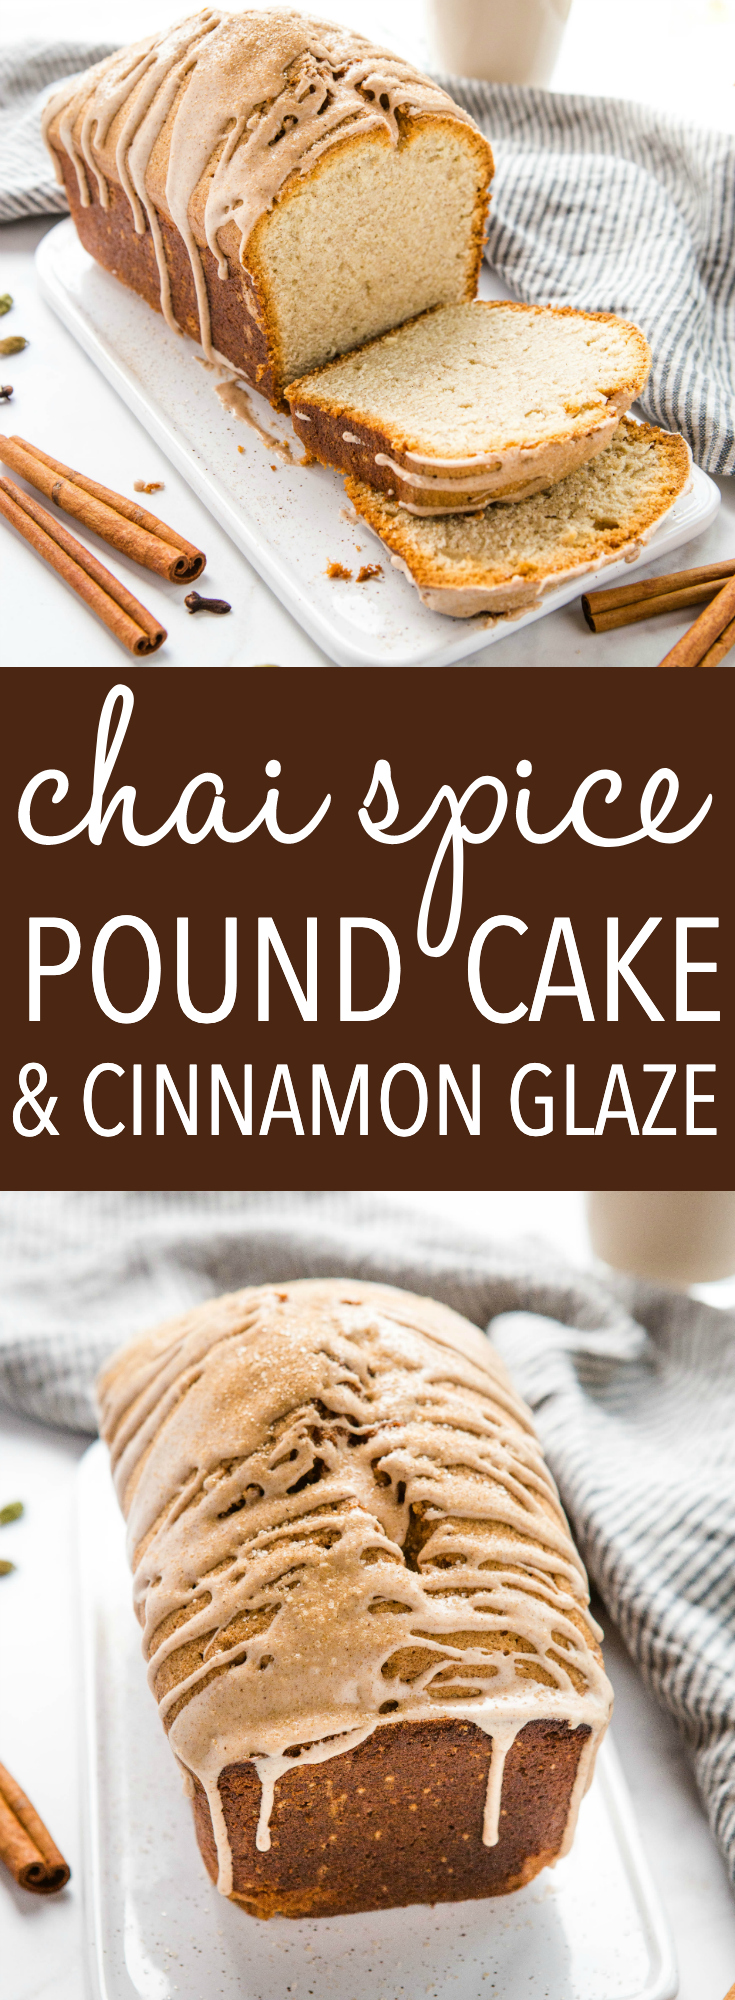 This Chai Spice Pound Cake with Cinnamon Glaze is a perfectly simple easy-to-make dessert made with sour cream, chai spices, and a sweet & spicy cinnamon glaze. Recipe from thebusybaker.ca! #chai #spice #cake #cinnamon #poundcake #howtomakepoundcake #tea via @busybakerblog